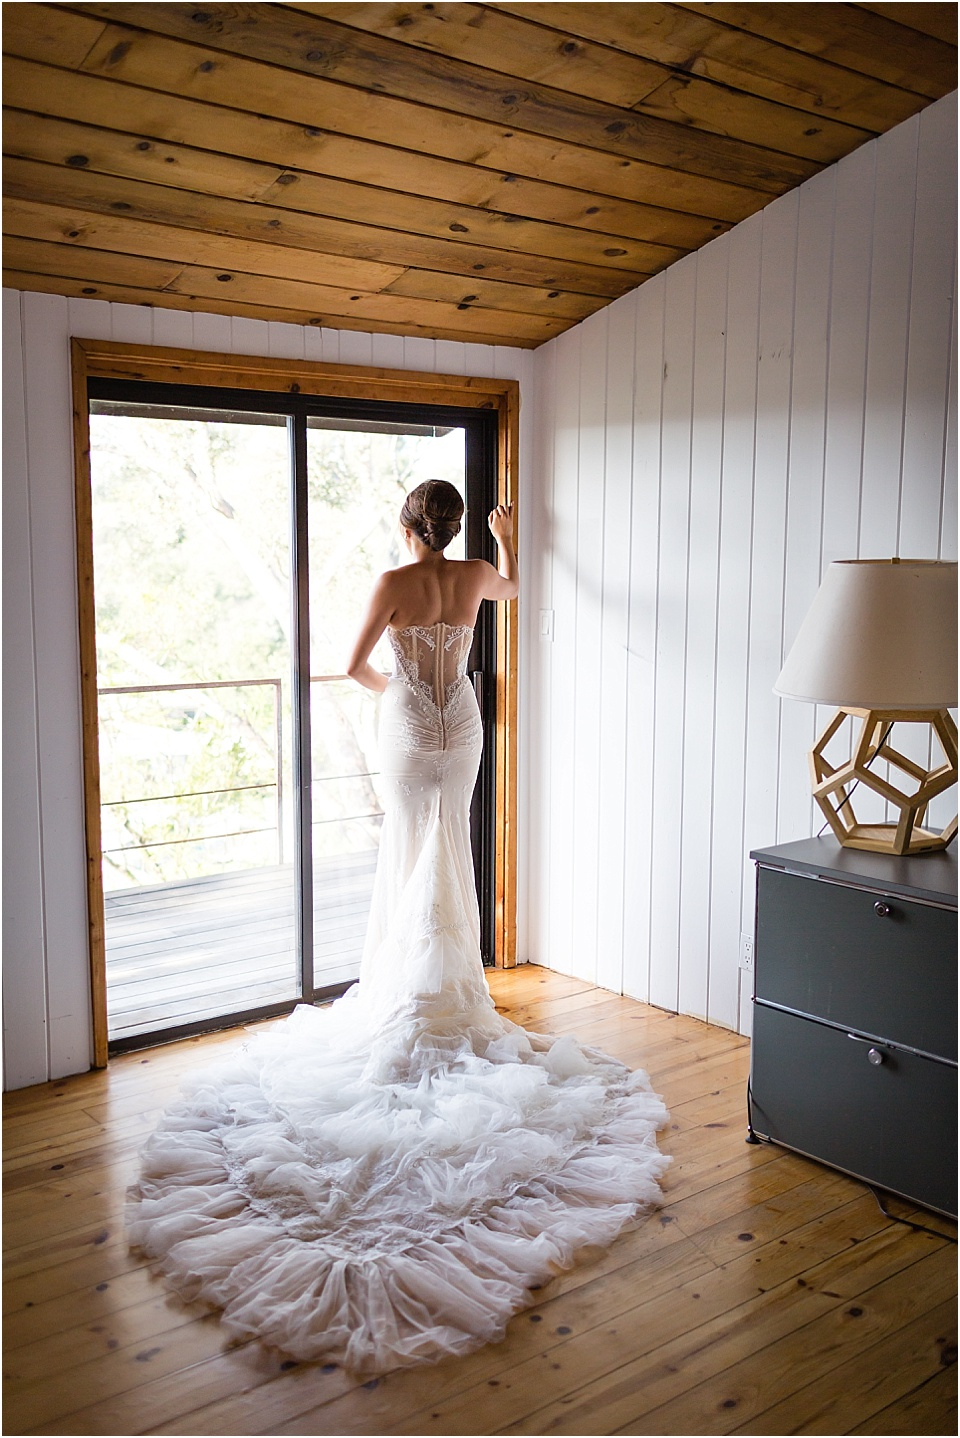 Inbal Dror Wedding Dress - Valorie Darling Photography